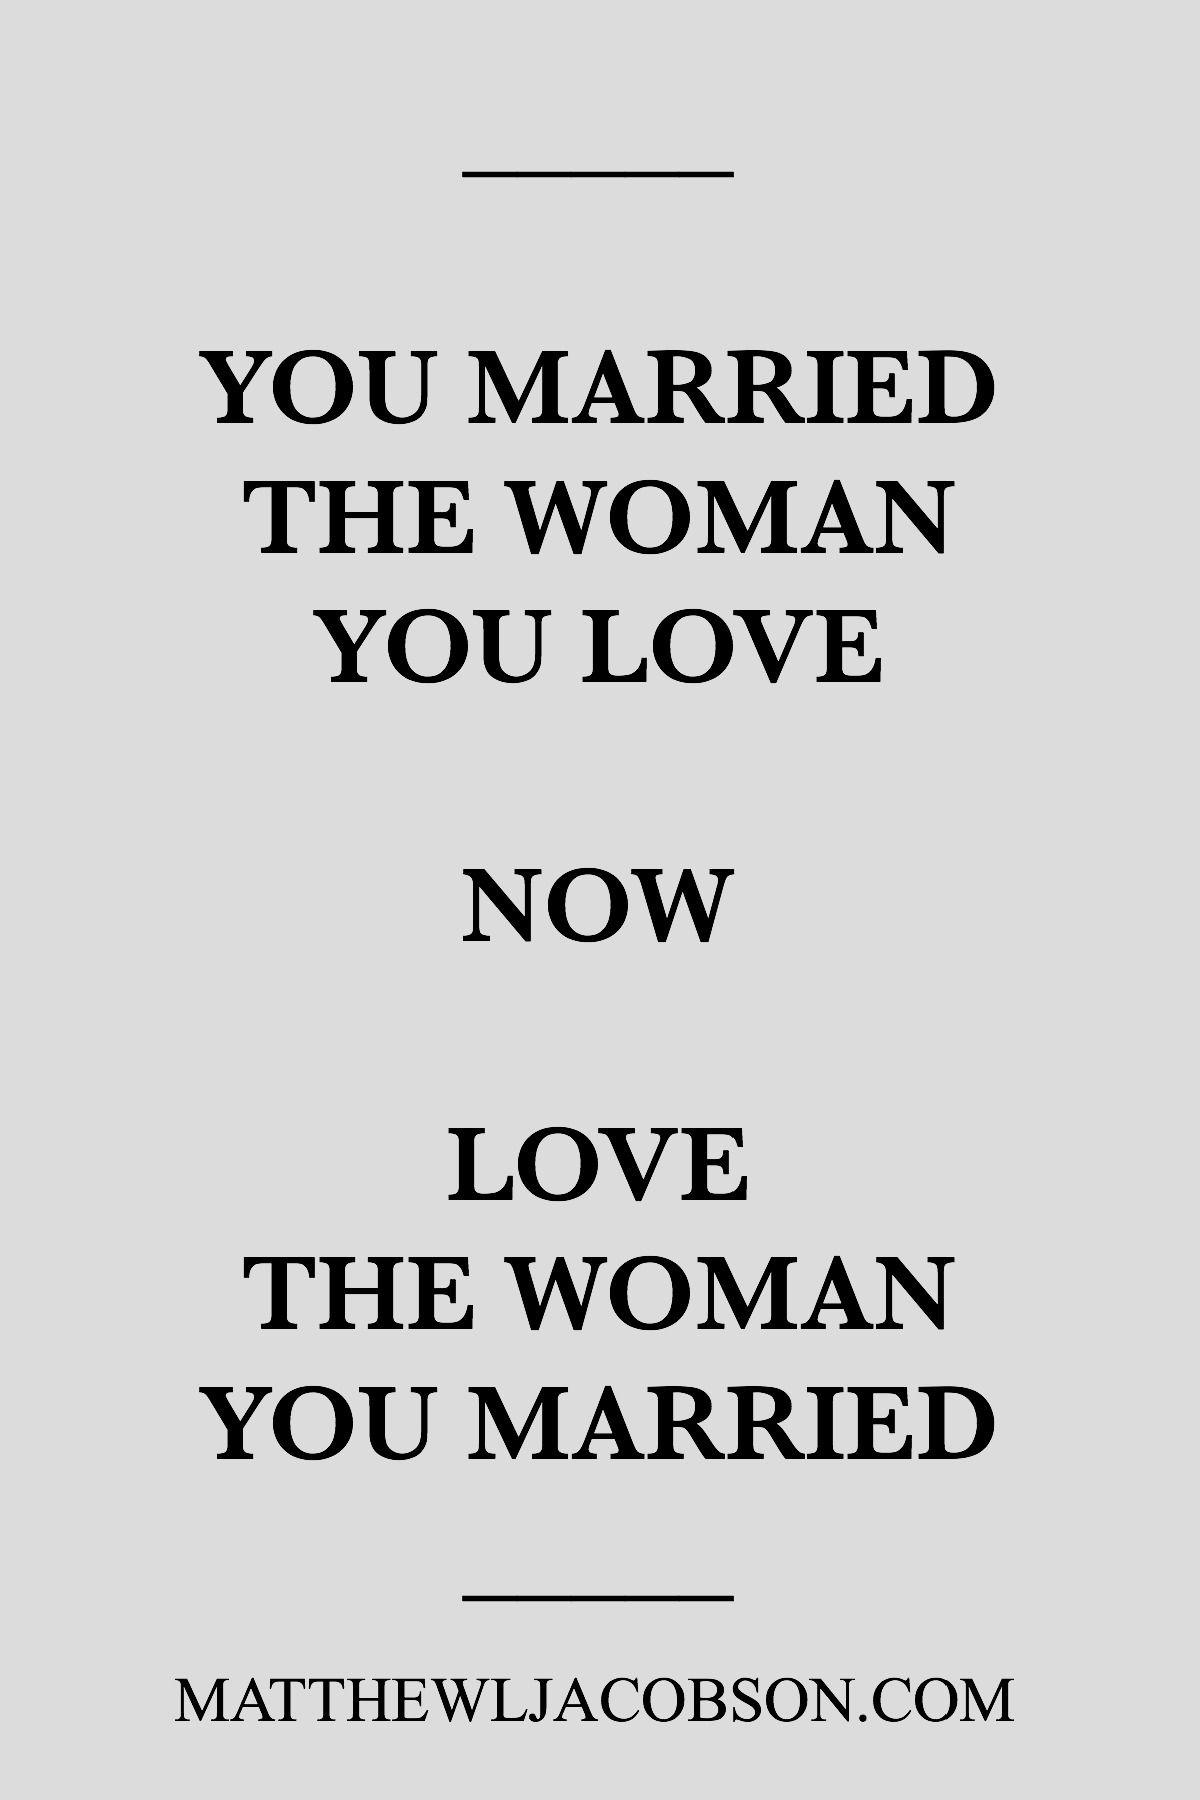 Marriage Quotes Marriage Is For Life  For Better Or For Worse Just Married